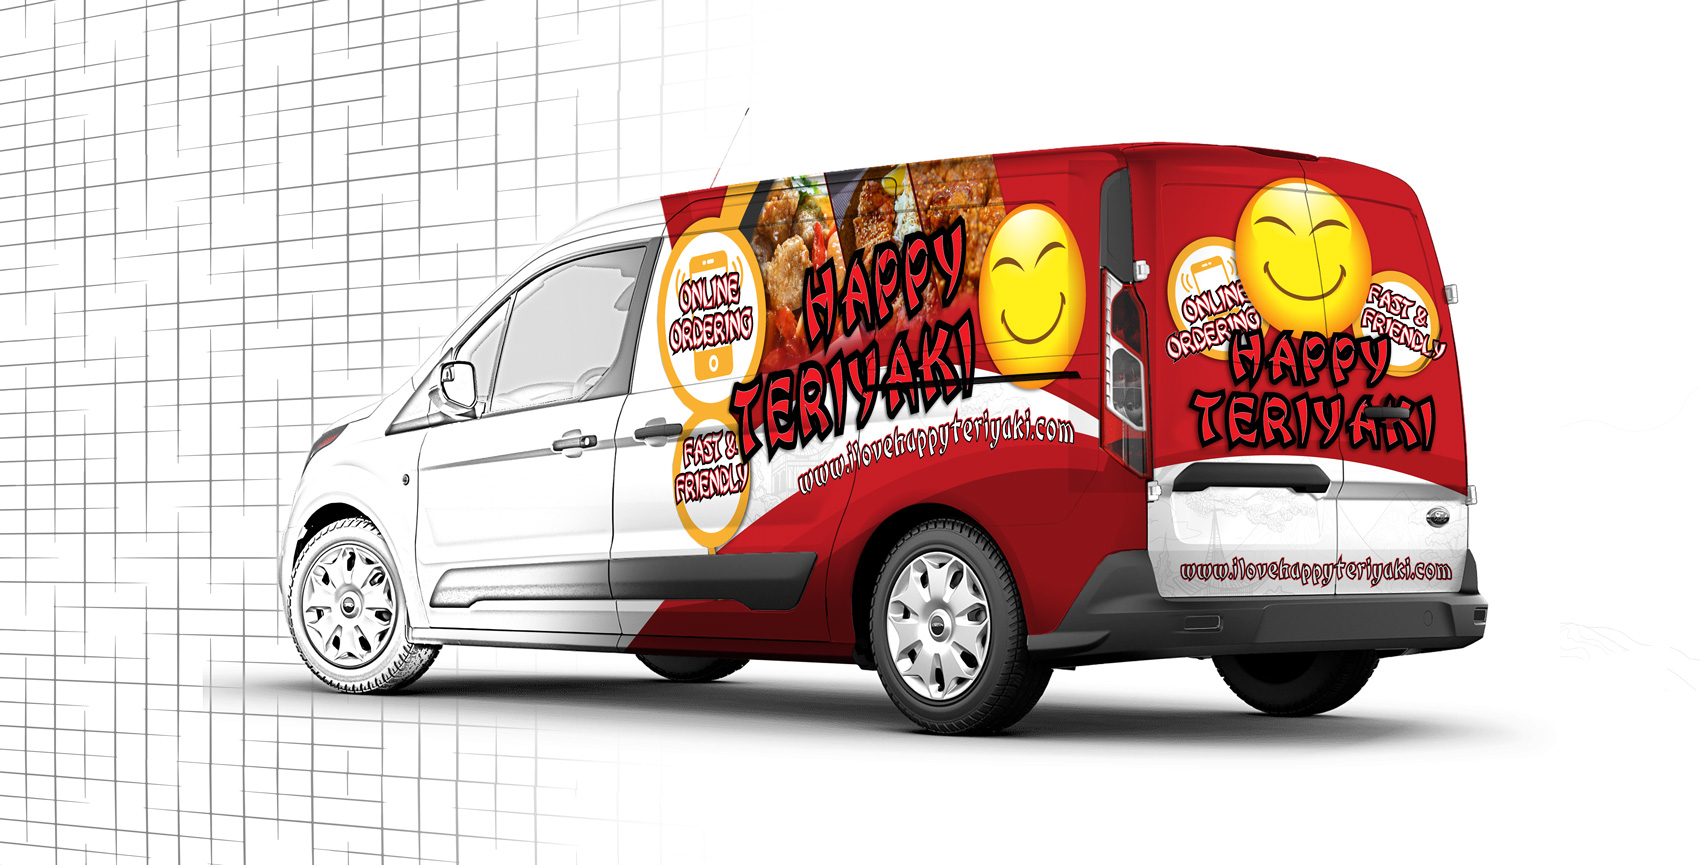 Happy Teriyaki 3/4 Van Wrap Design